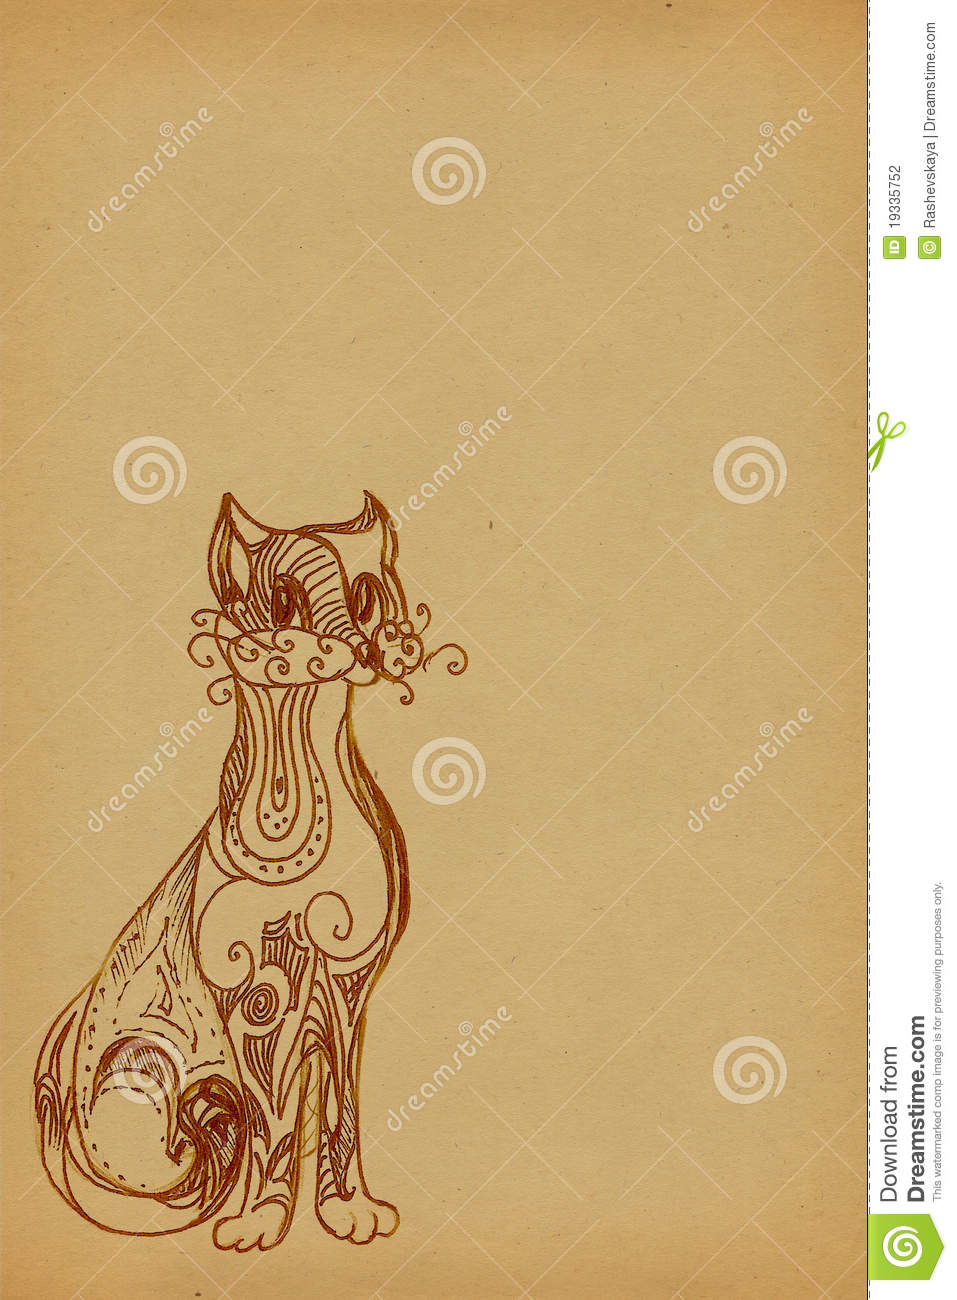 Background with a cat